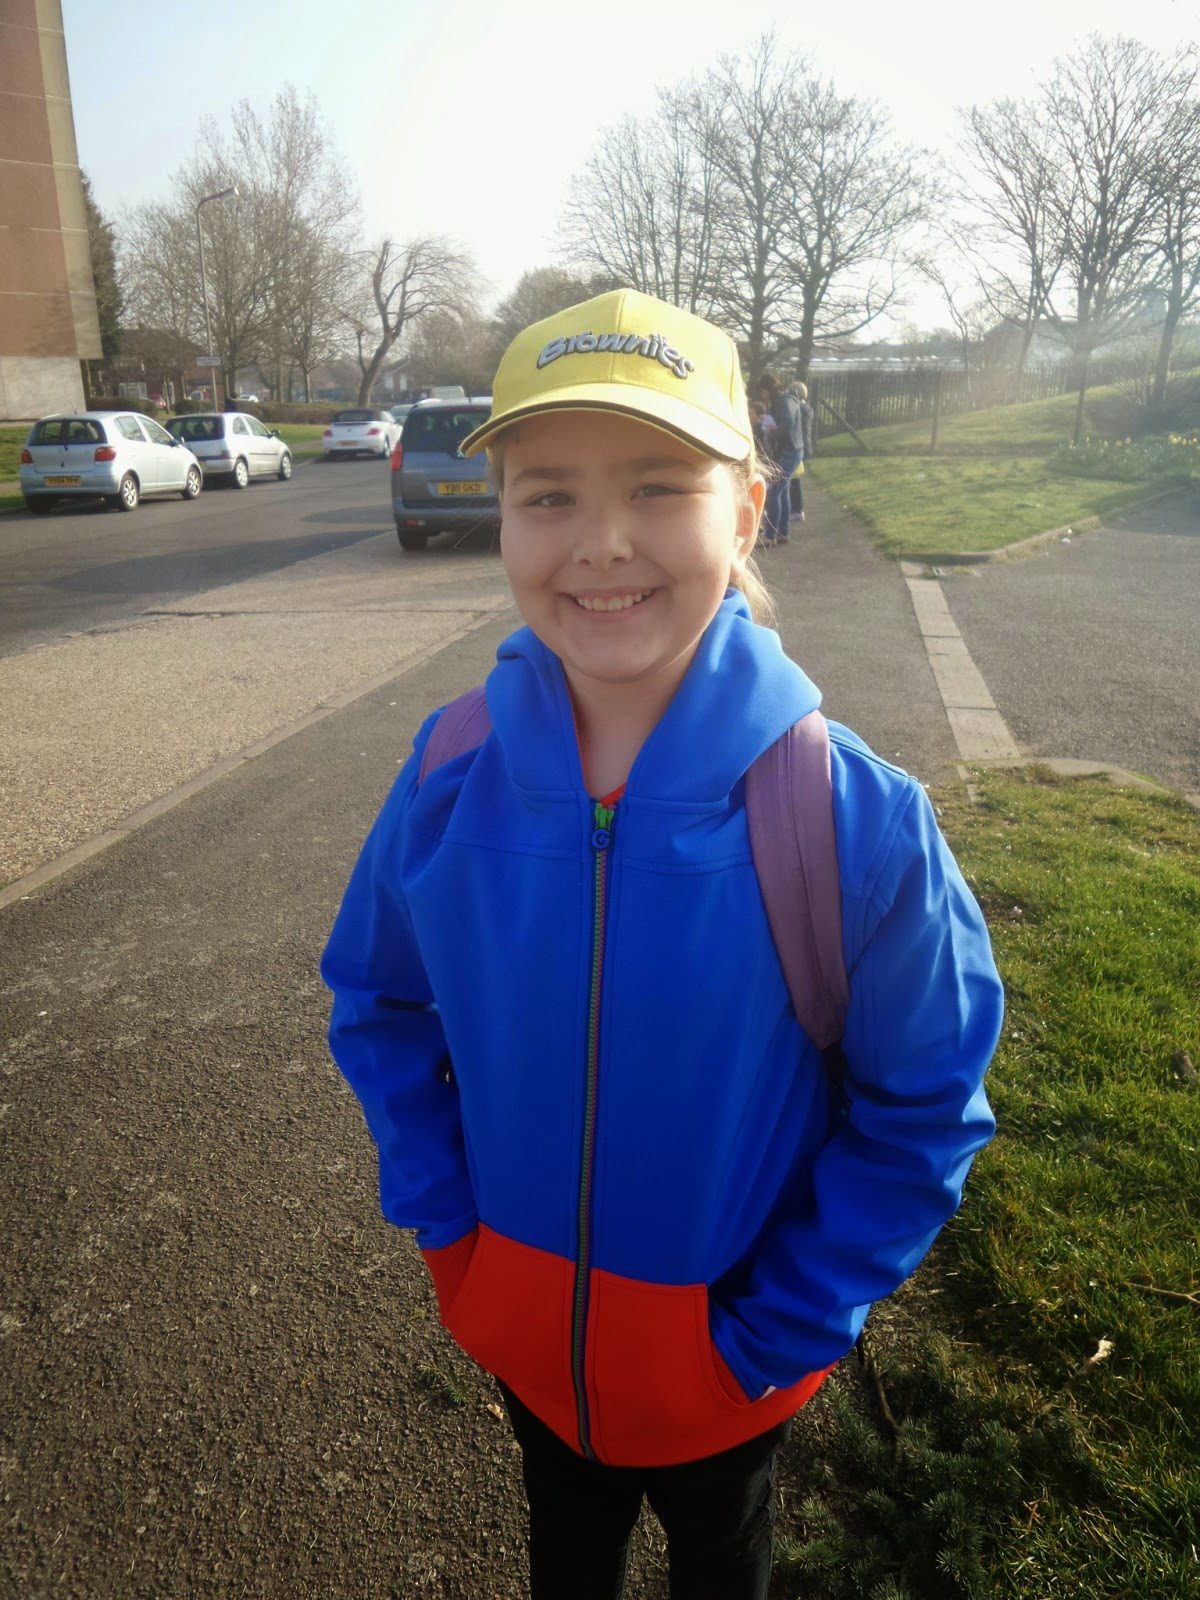 Top Ender in her Guides gear about to go on a Guides Trip